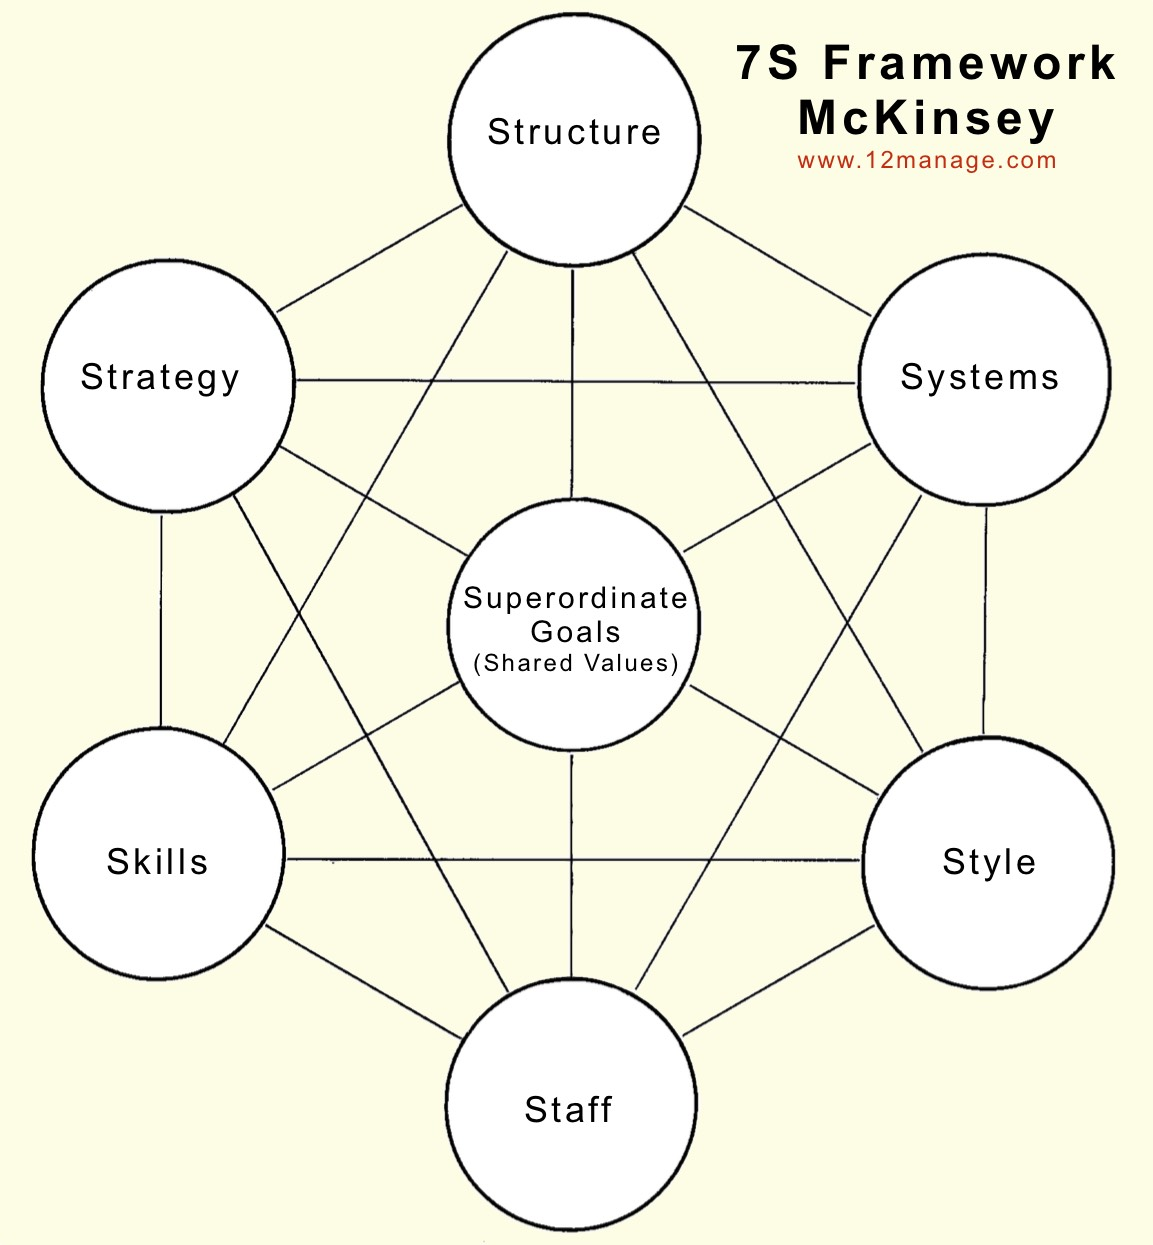 mckinsey s 7s samsung The 7s framework or mckinsey 7s framework provides this understanding the mckinsey 7s framework was designed by former employees like tom peters , richard pascale and robert waterman jr , formers consultants of mckinsey , the american consulting firm and is applied in organizations all over the world.